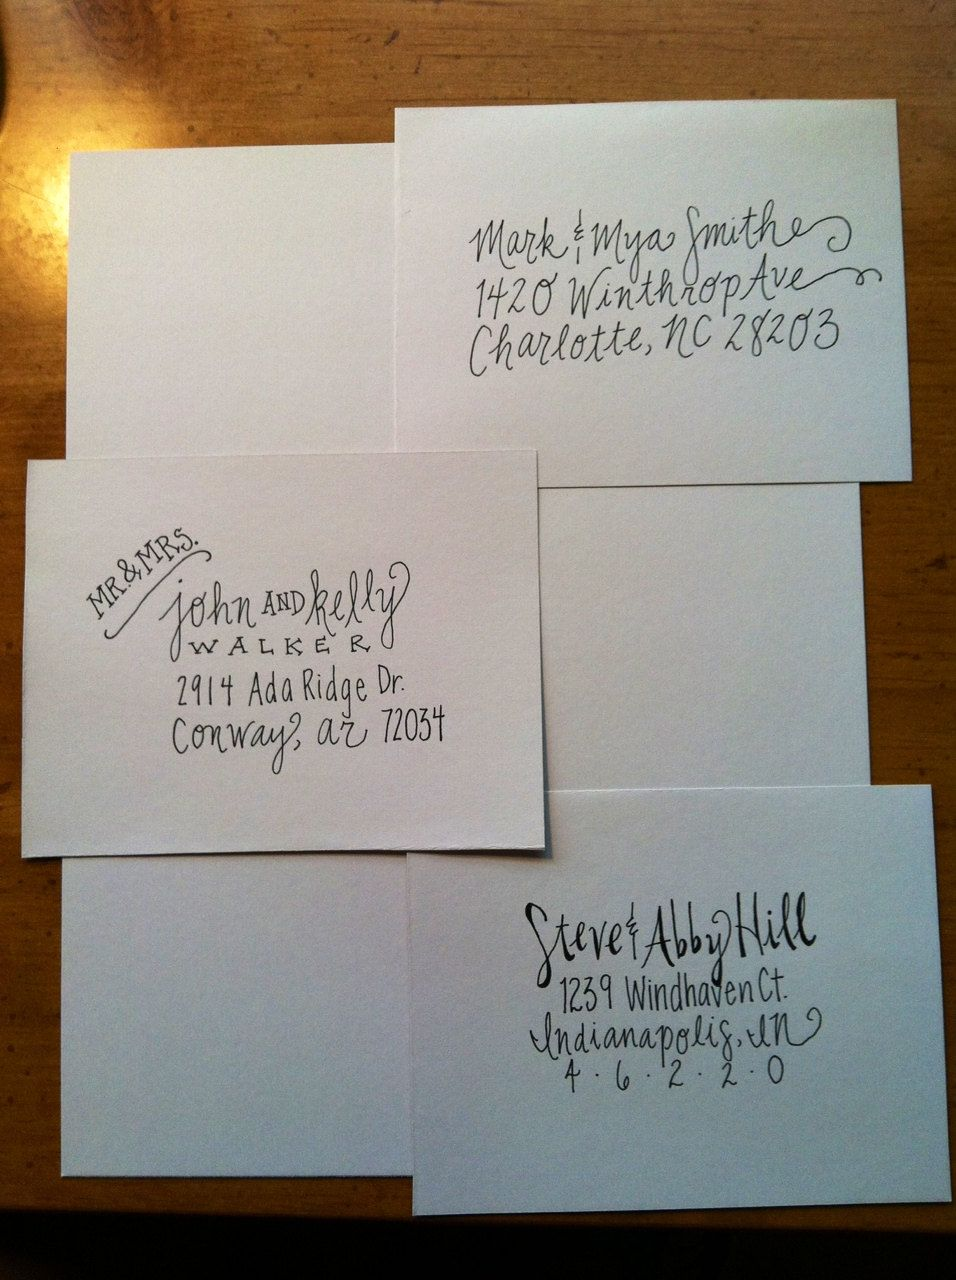 Handwritten Addressed Envelopes Handwritten Addressed Envelopes